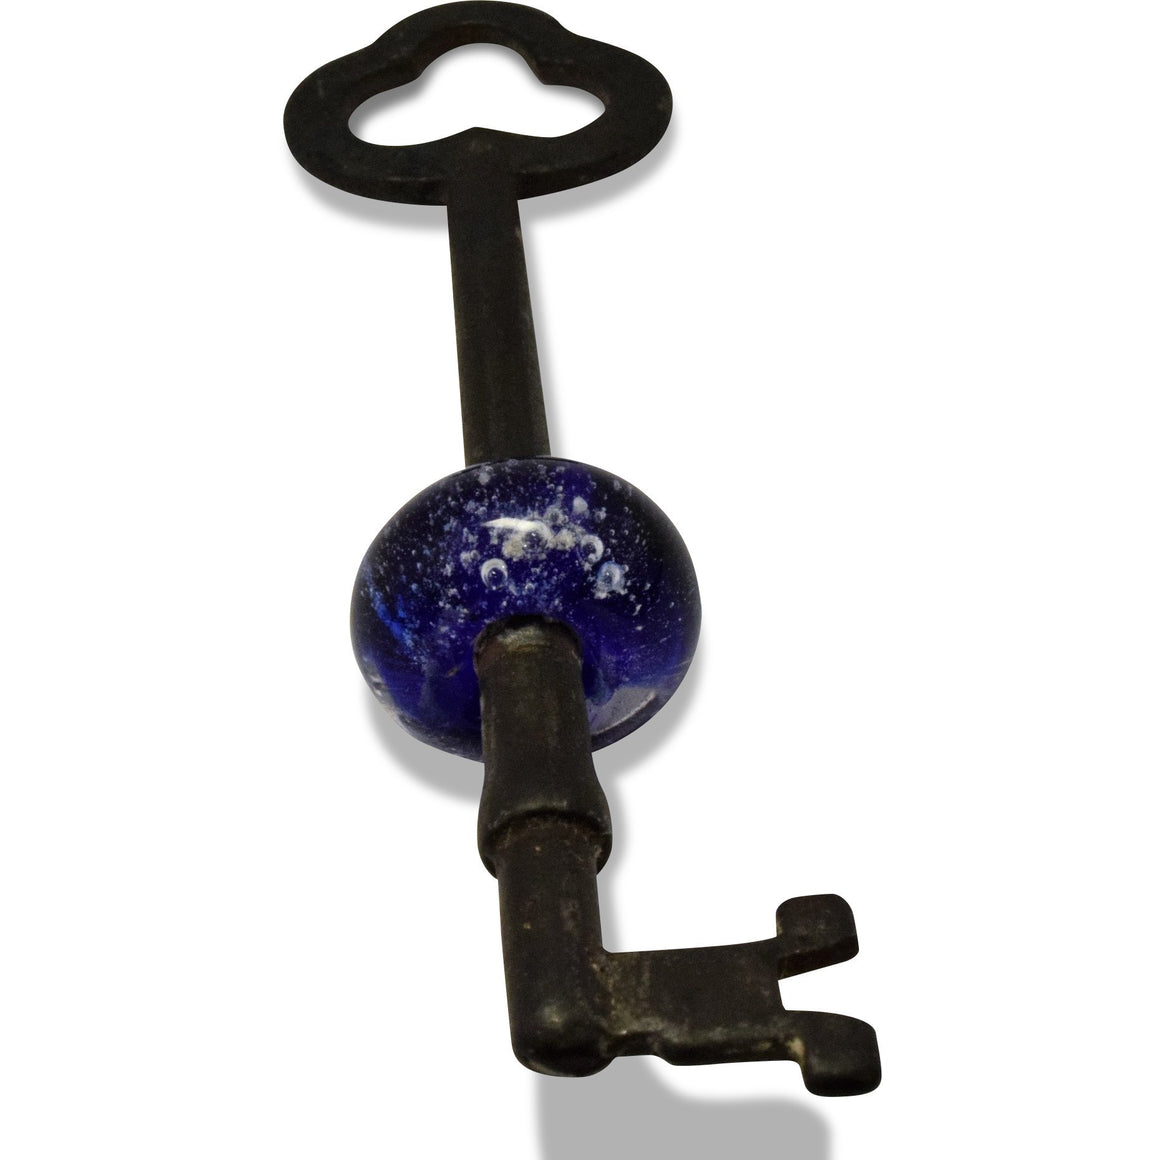 Antique Memorial Key Infused with Cremation Ashes-Forever Fused